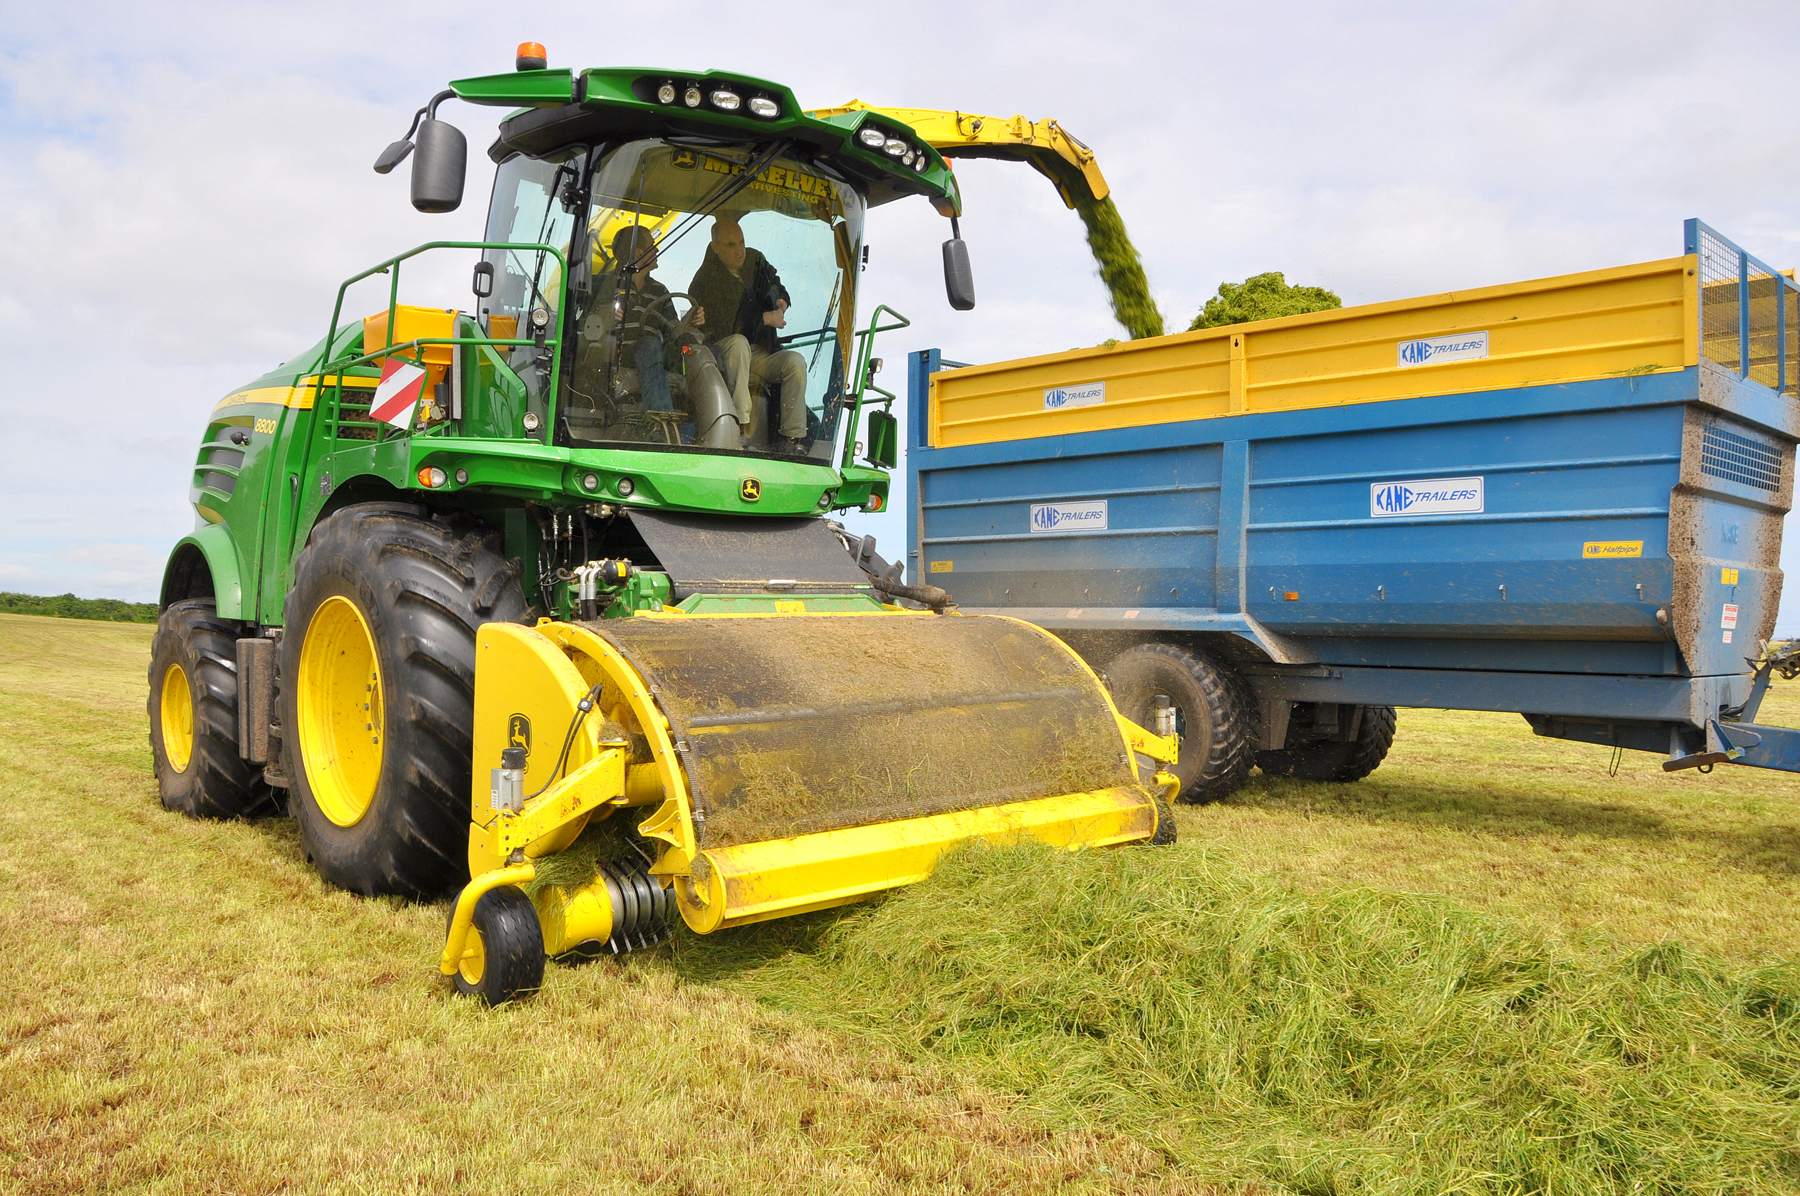 driving his new 8800 self-propelled forage harvester, with John Deere ...